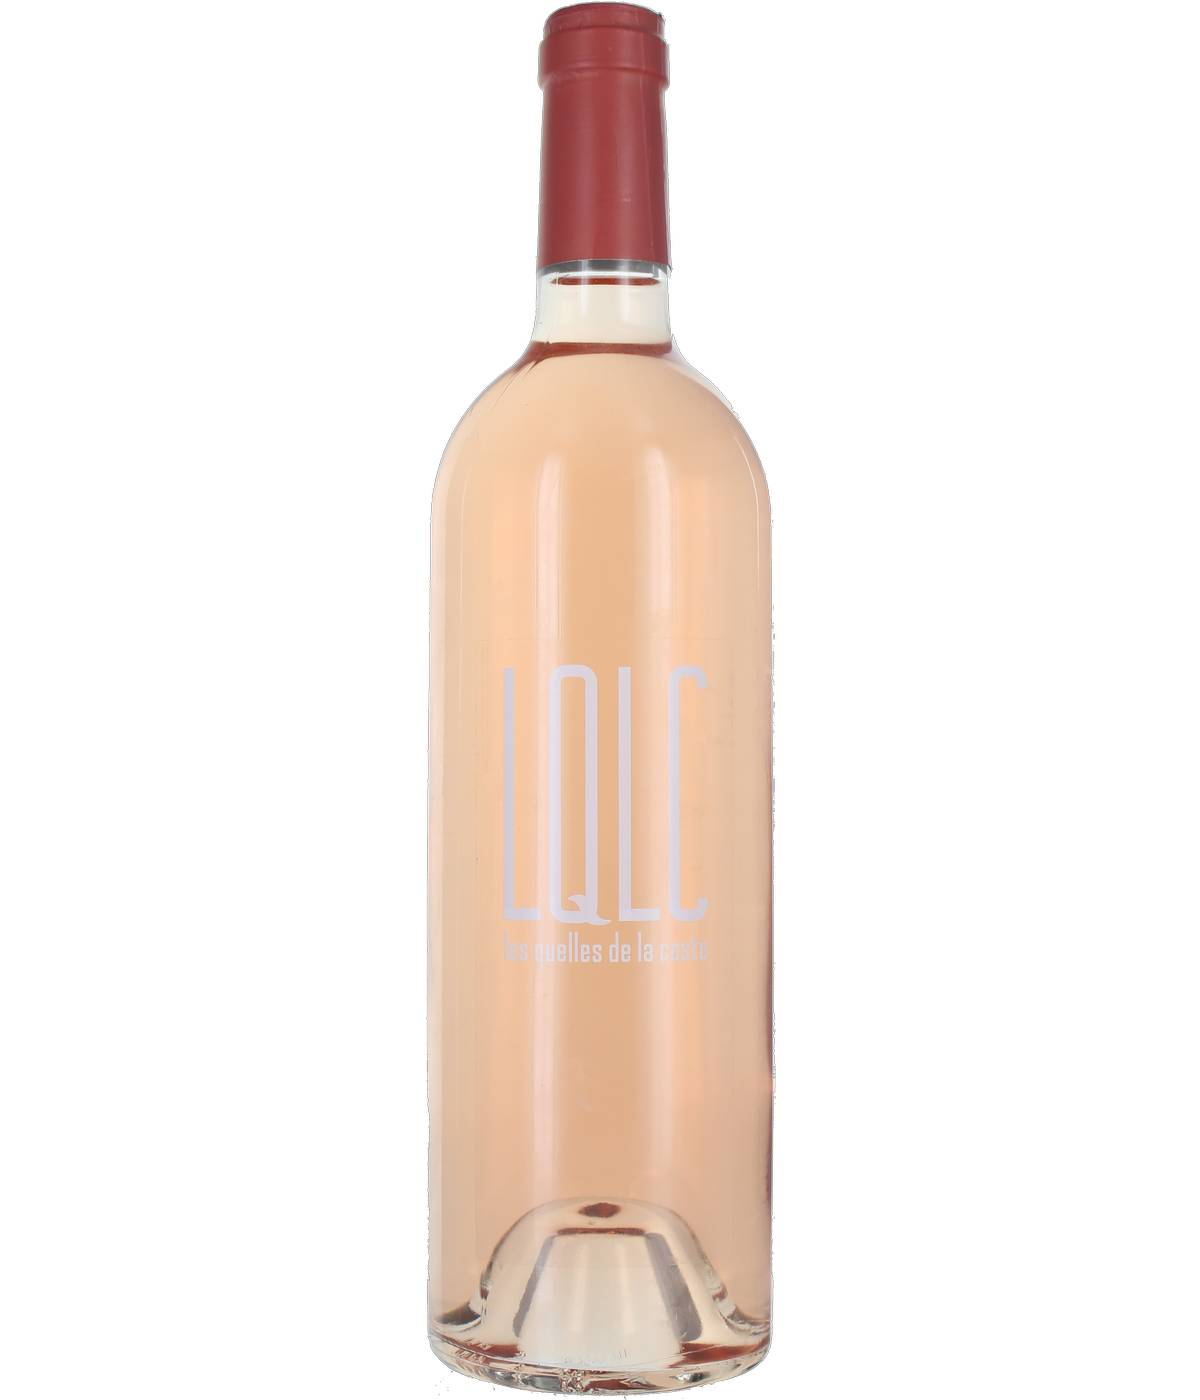 Lqlc Rose 750 ml Vitt Vin